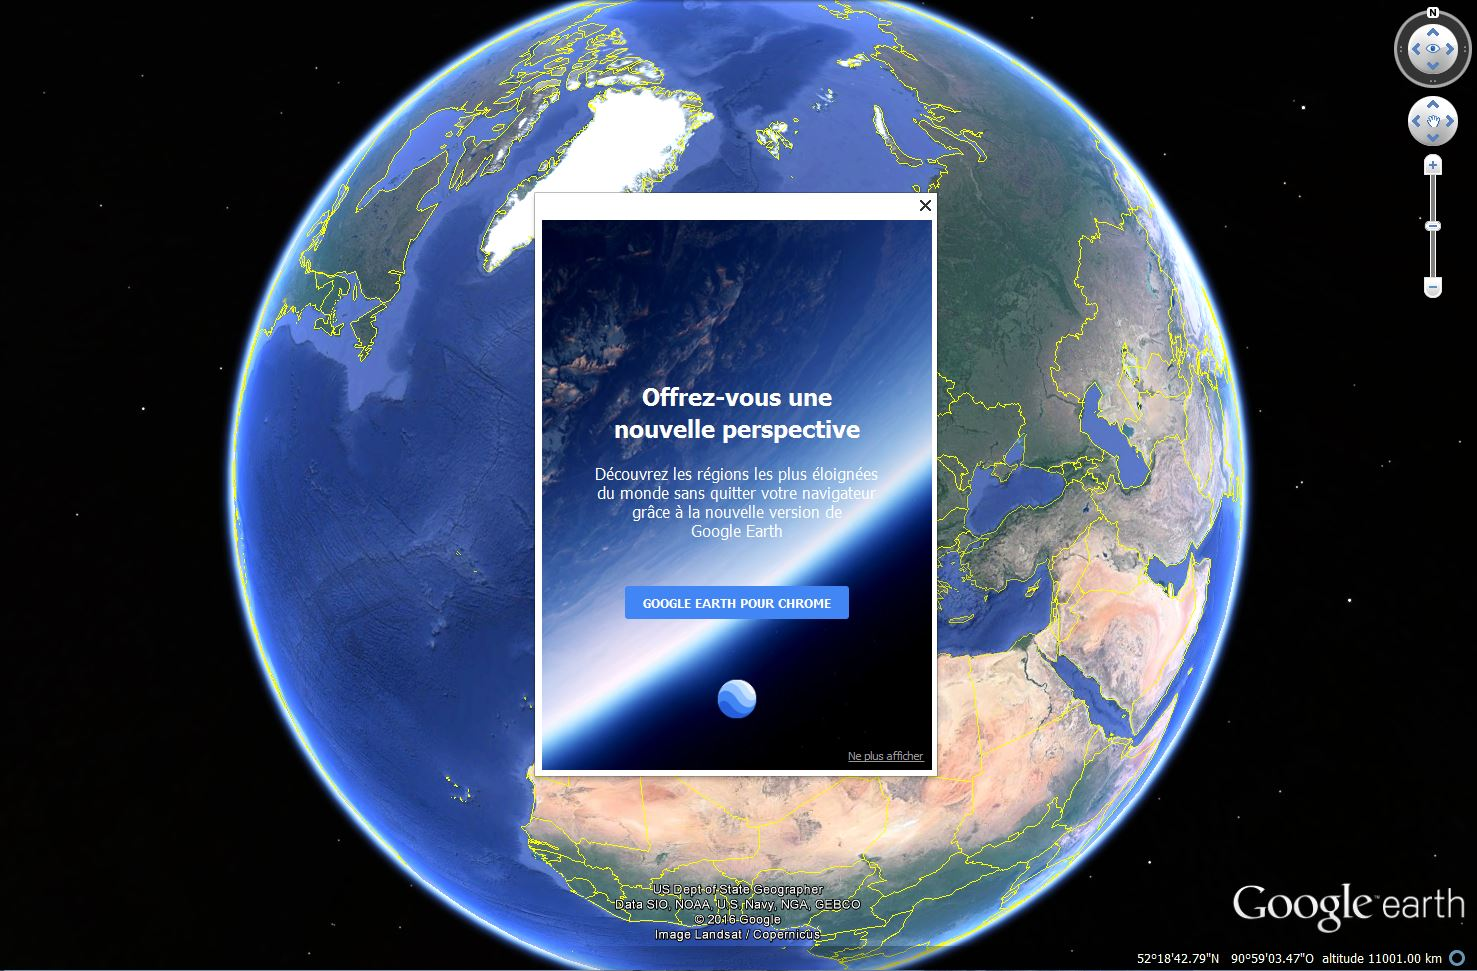 Nouveau Google Earth le 18 AVRIL 2017 Tsge_224